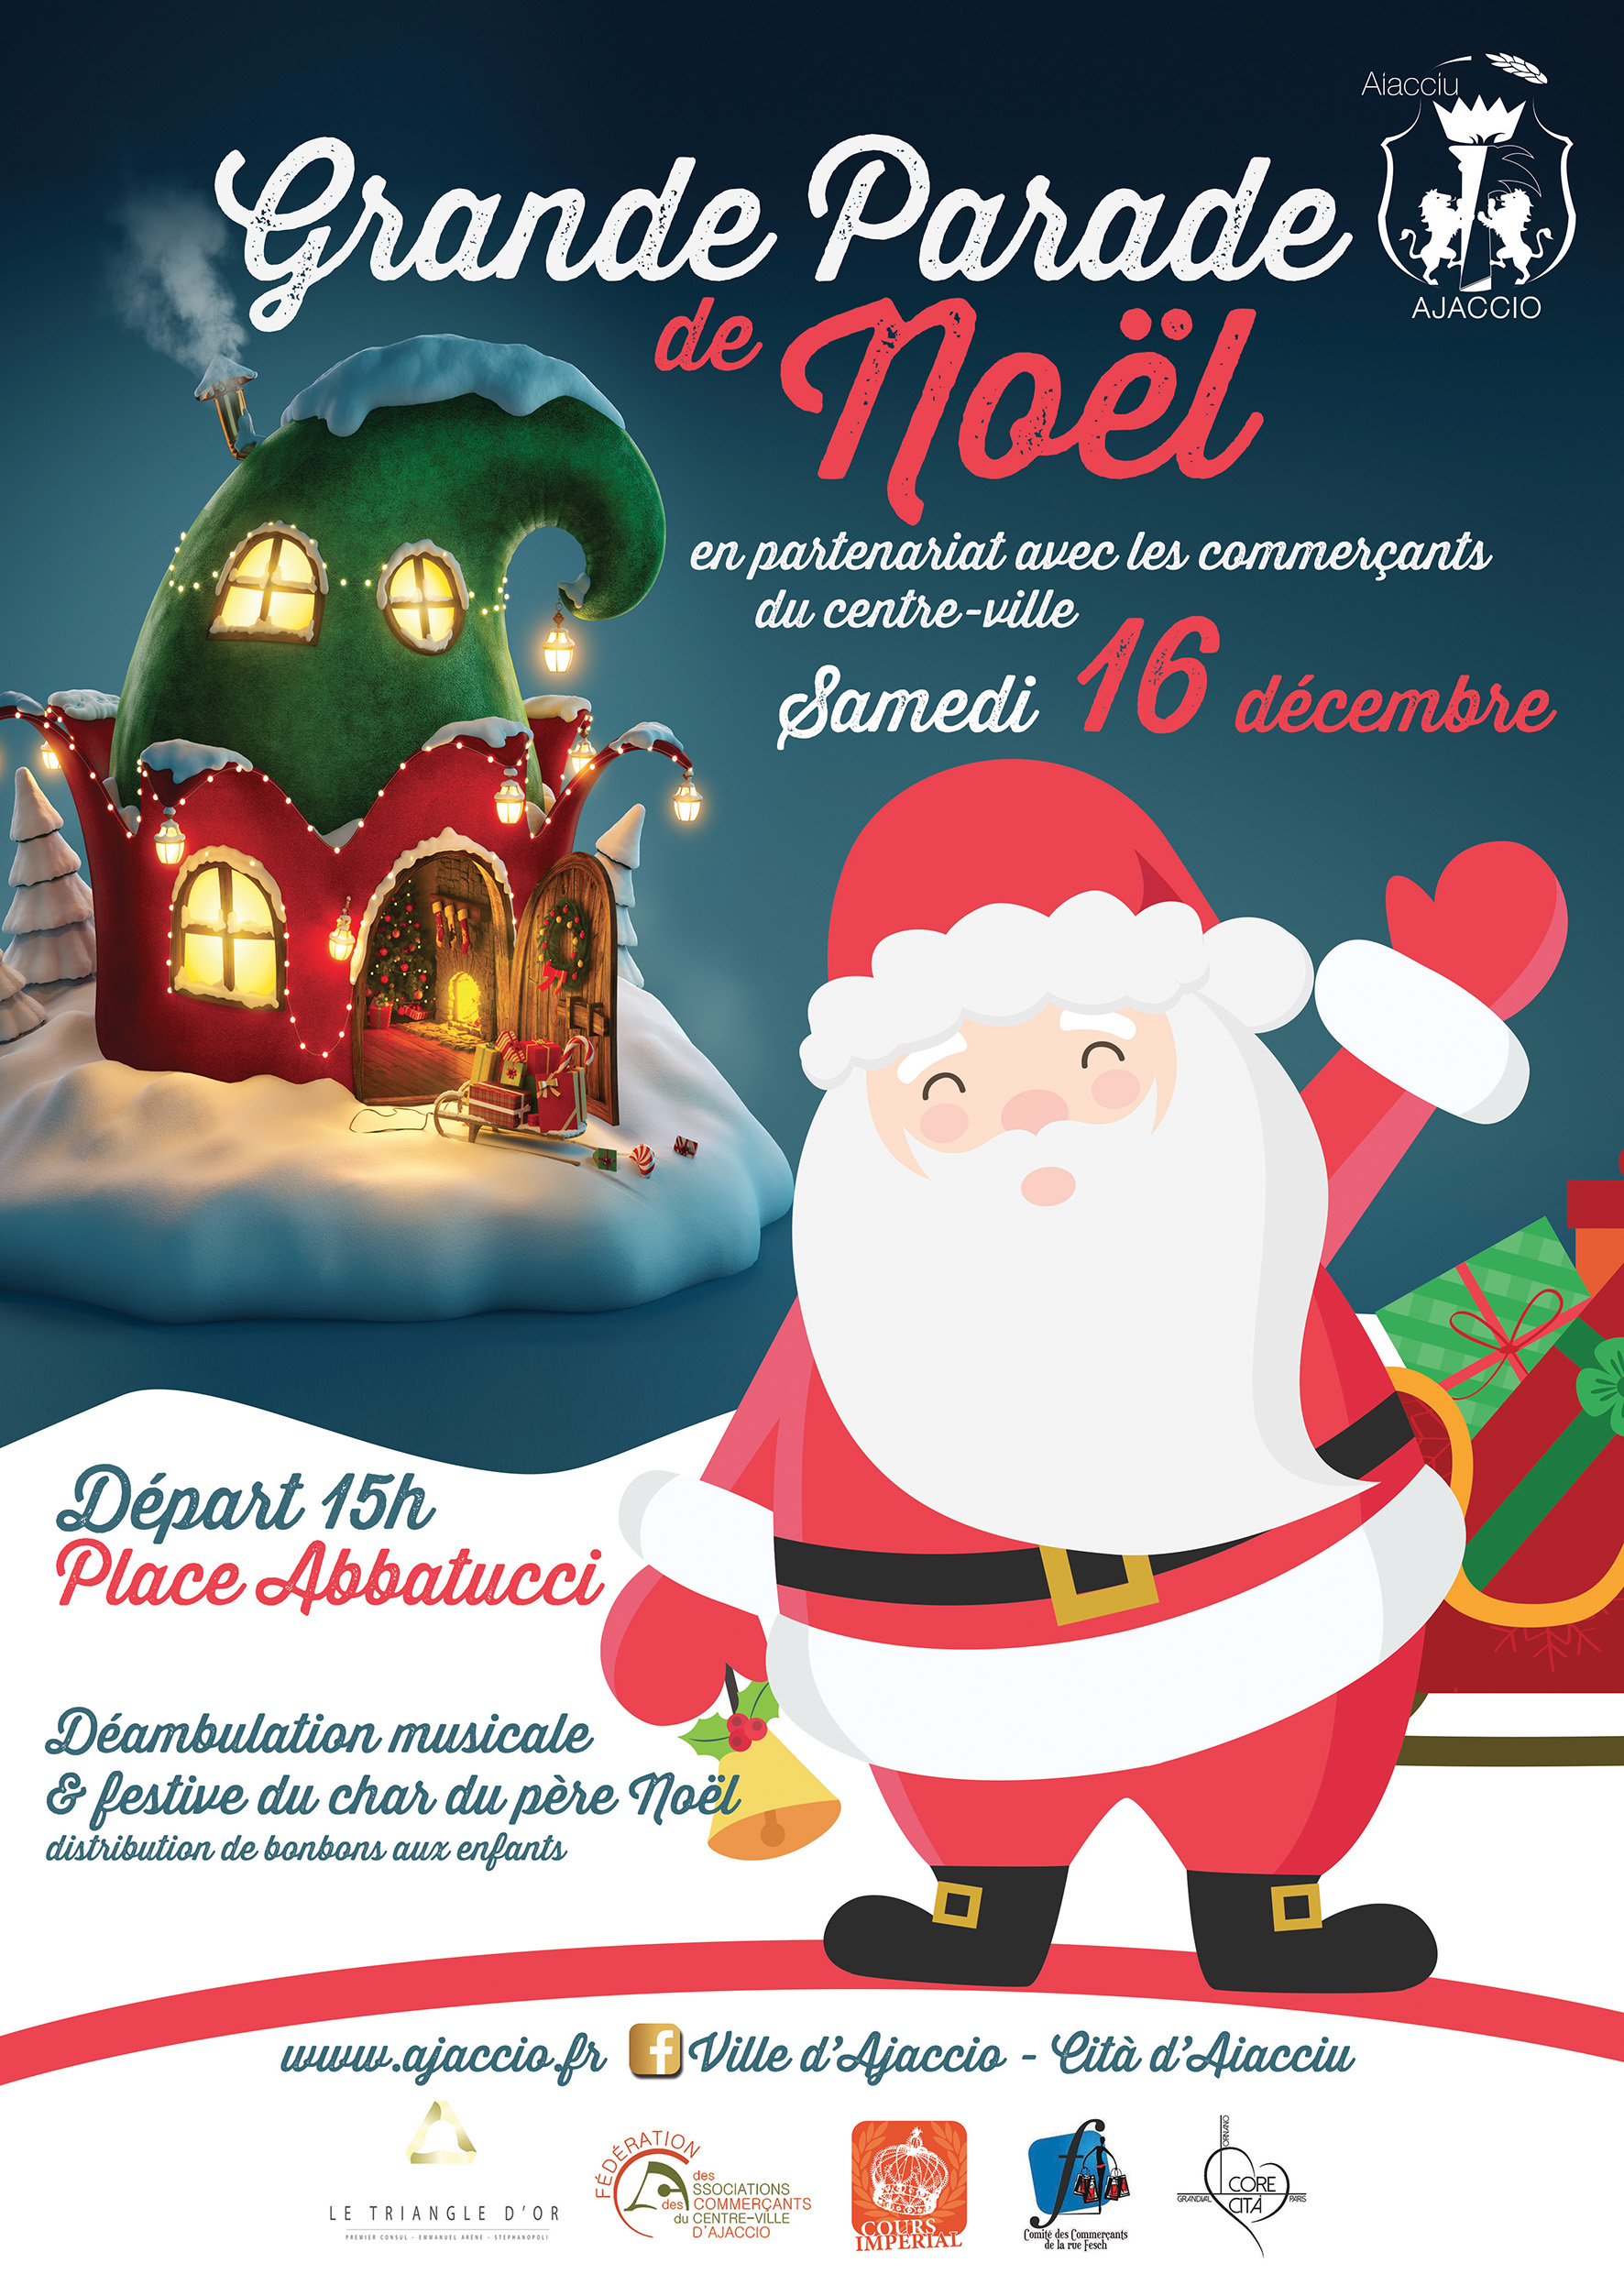 Natale in Aiacciu 2017 : Animations en Centre-ville